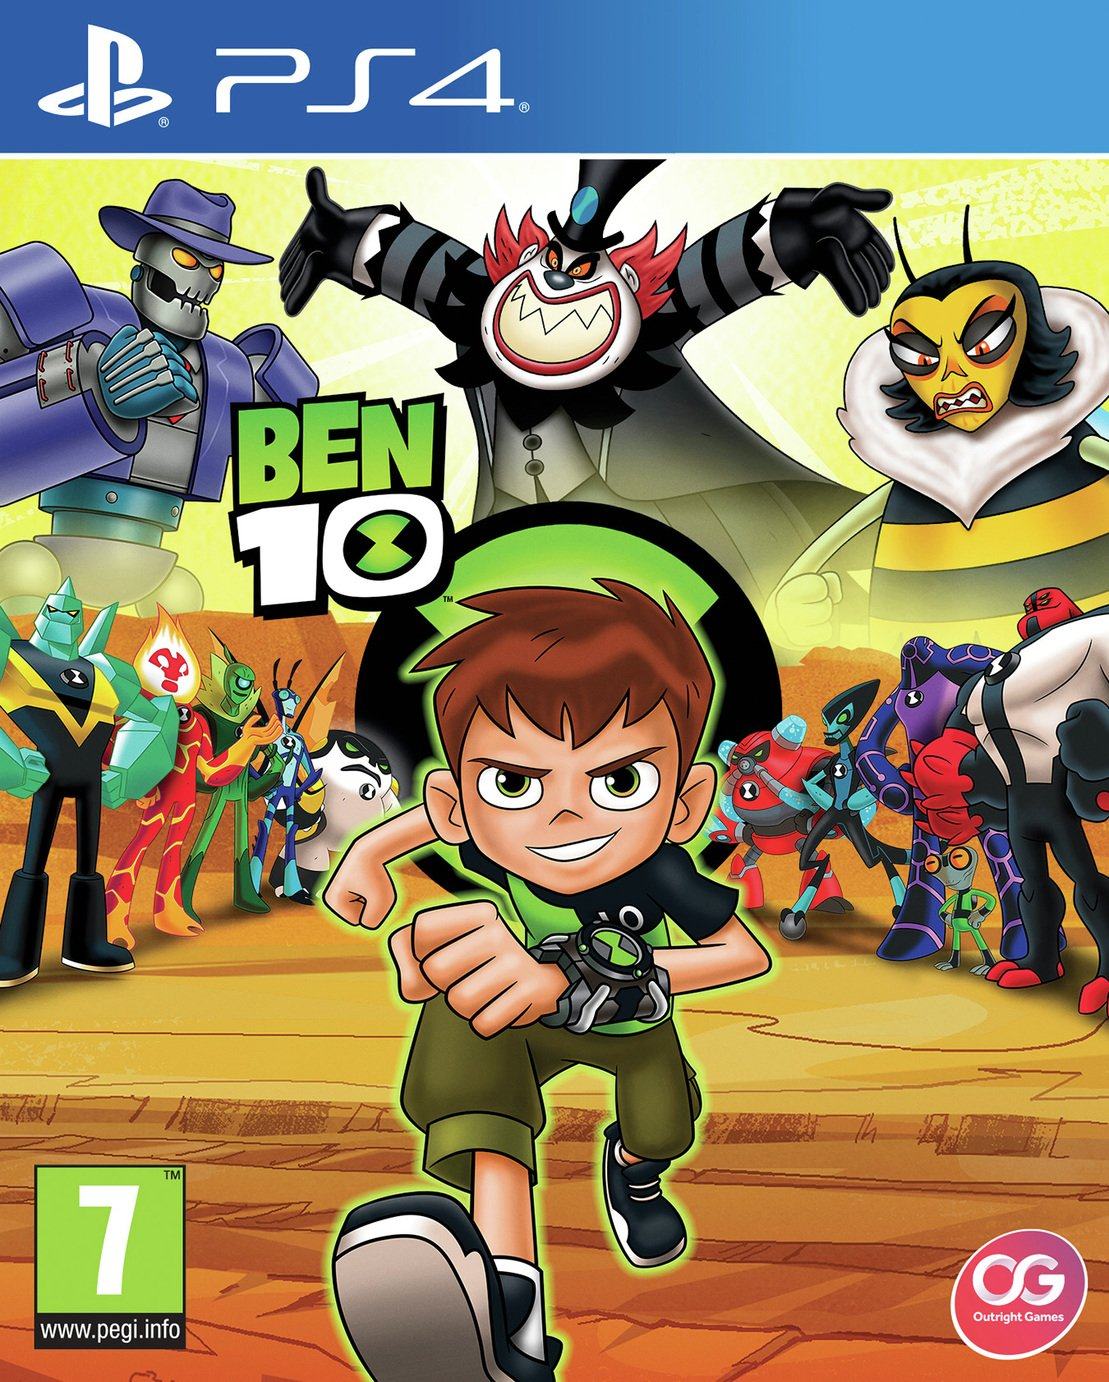 Image of Ben 10 PS4 Game